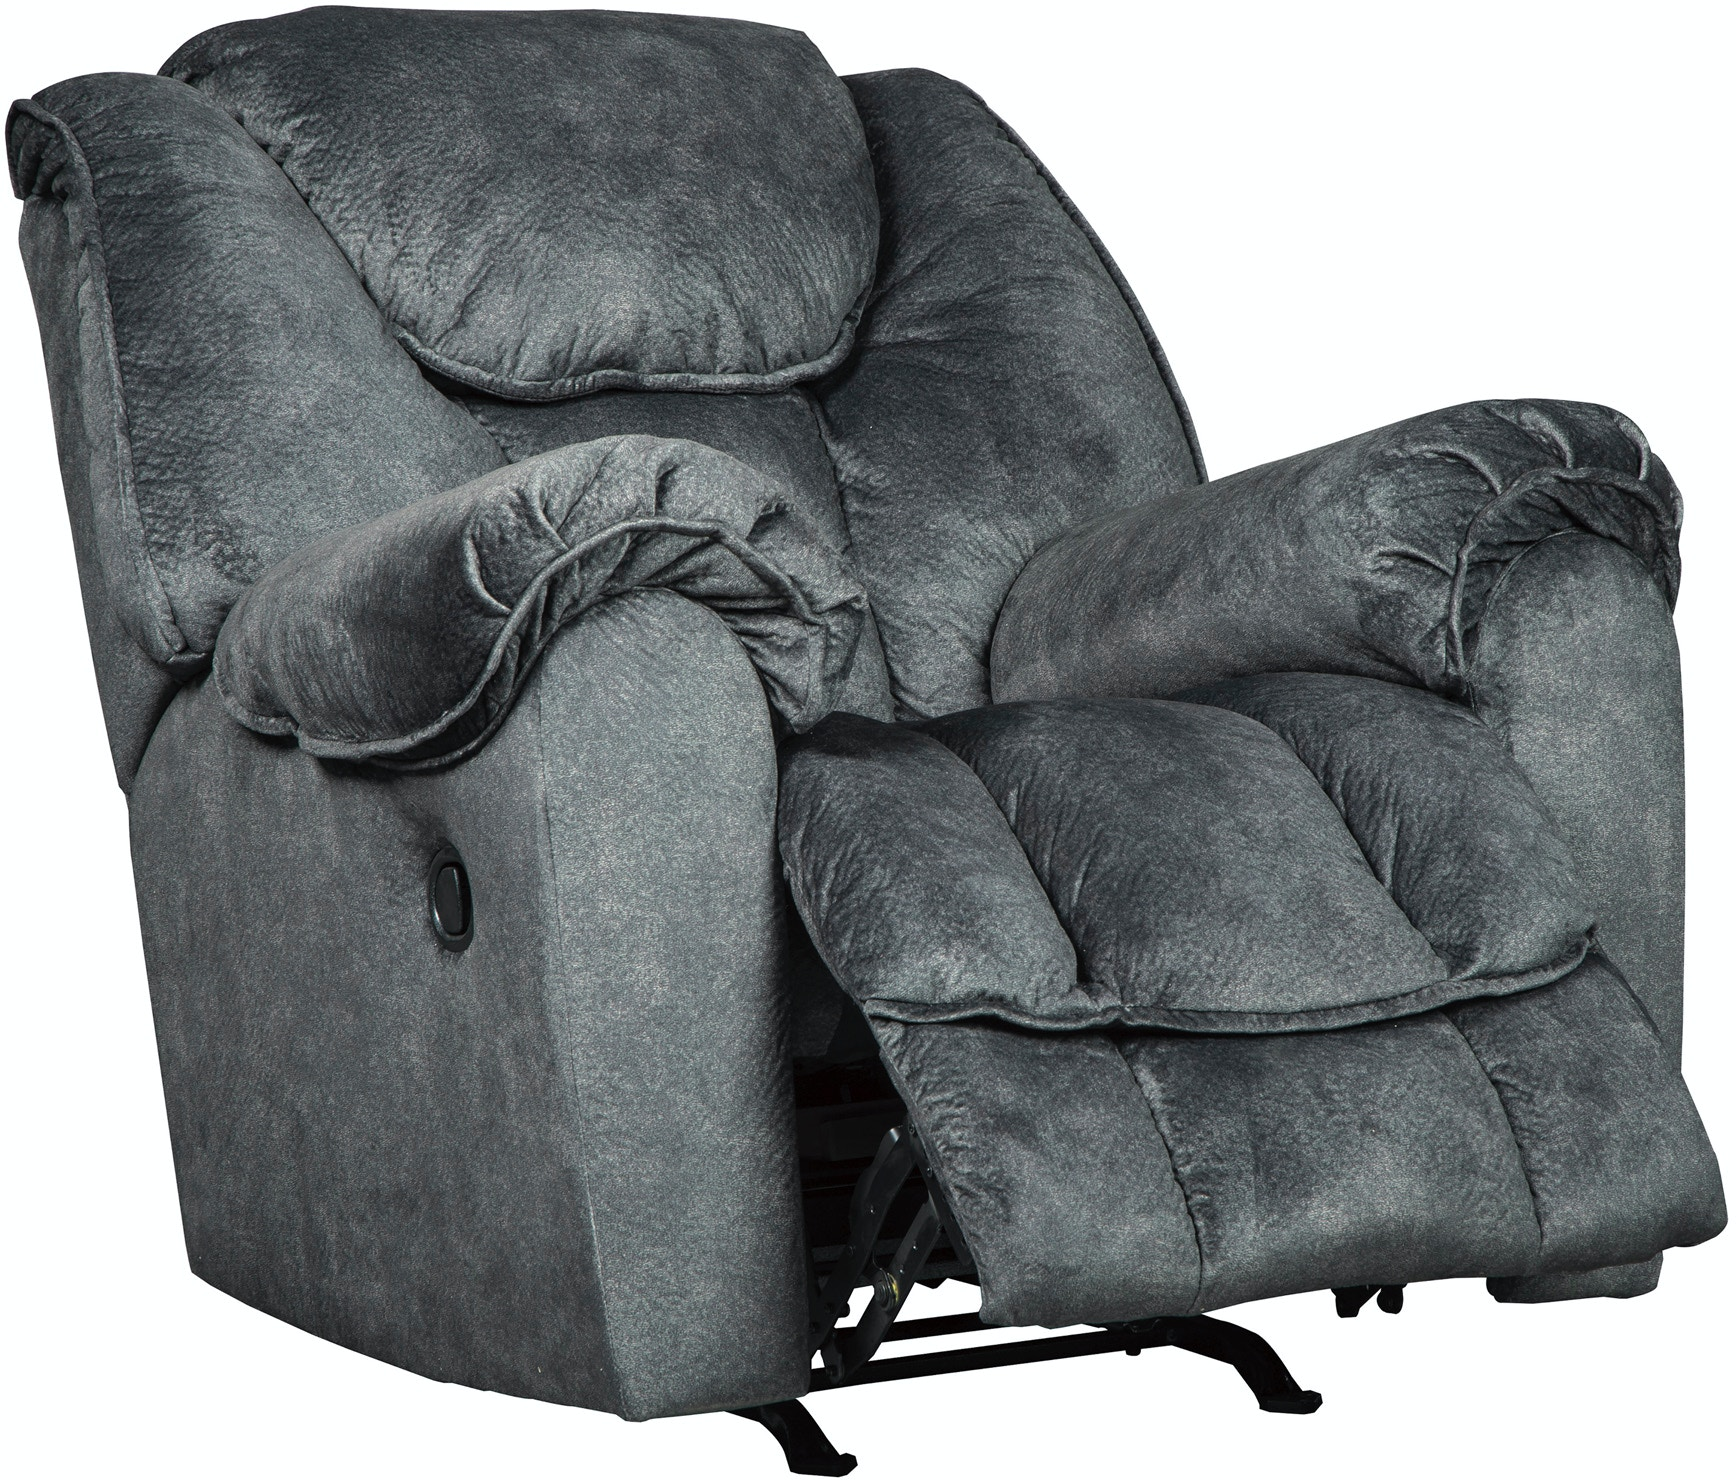 detail home catalog chair by flight pictures comforter furnishings design klaussner comfort issuu and ideas recliner